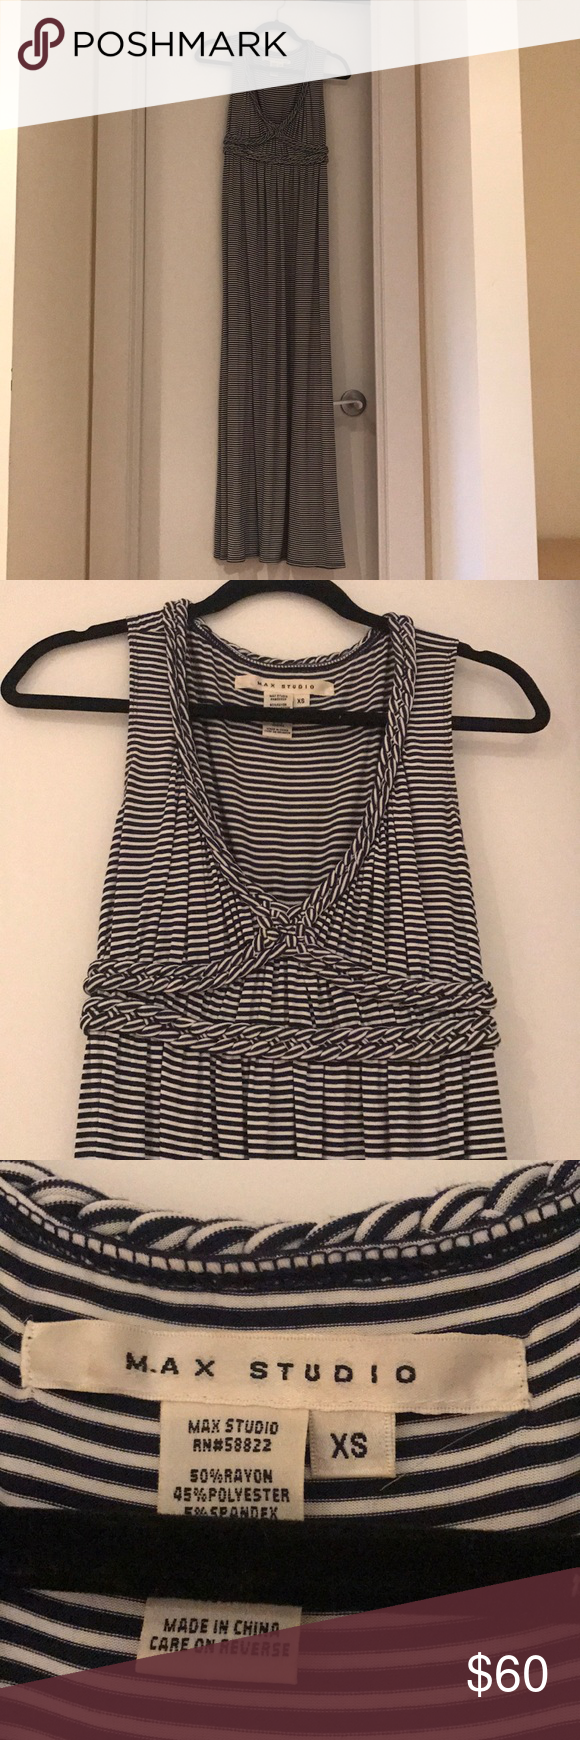 3a414993653 Max Studio Maxi Dress EUC. Worn a handful of times. Size XS. Max Studio  navy and white striped maxi dress. Max Studio Dresses